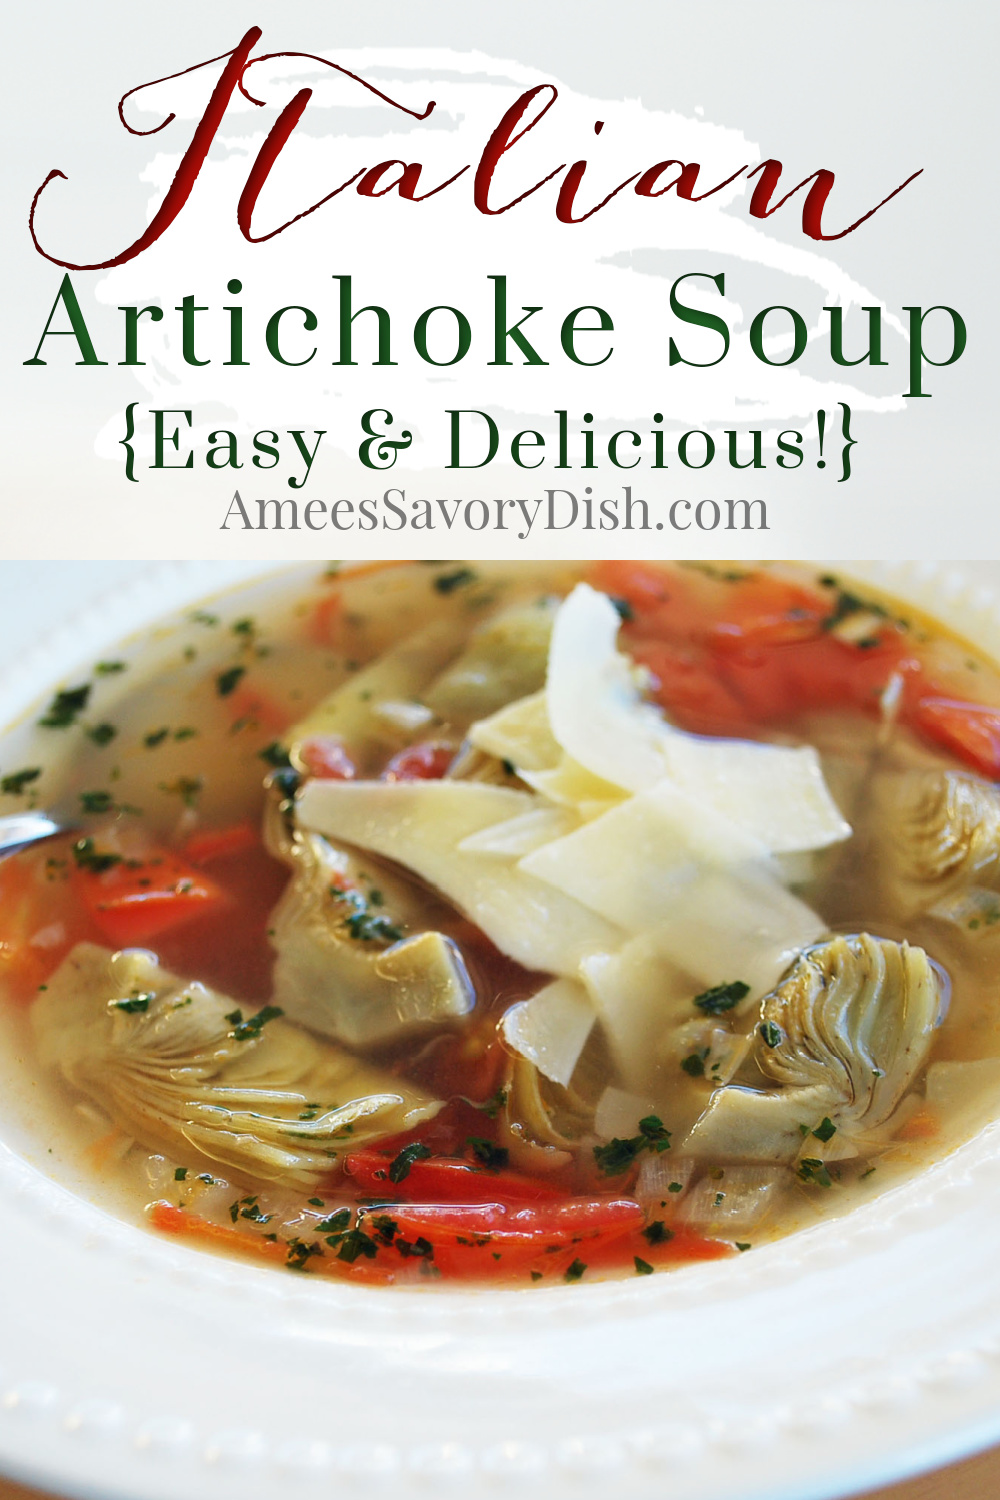 Artichoke soup,sometimes called Zuppa Di Carciofi, is a light and flavorful, broth-based Italian soup, made with artichokes, Roma tomatoes, onions, and fresh herbs. #souprecipe #soup #artichokesoup #healthysoups #italiansoup via @Ameessavorydish